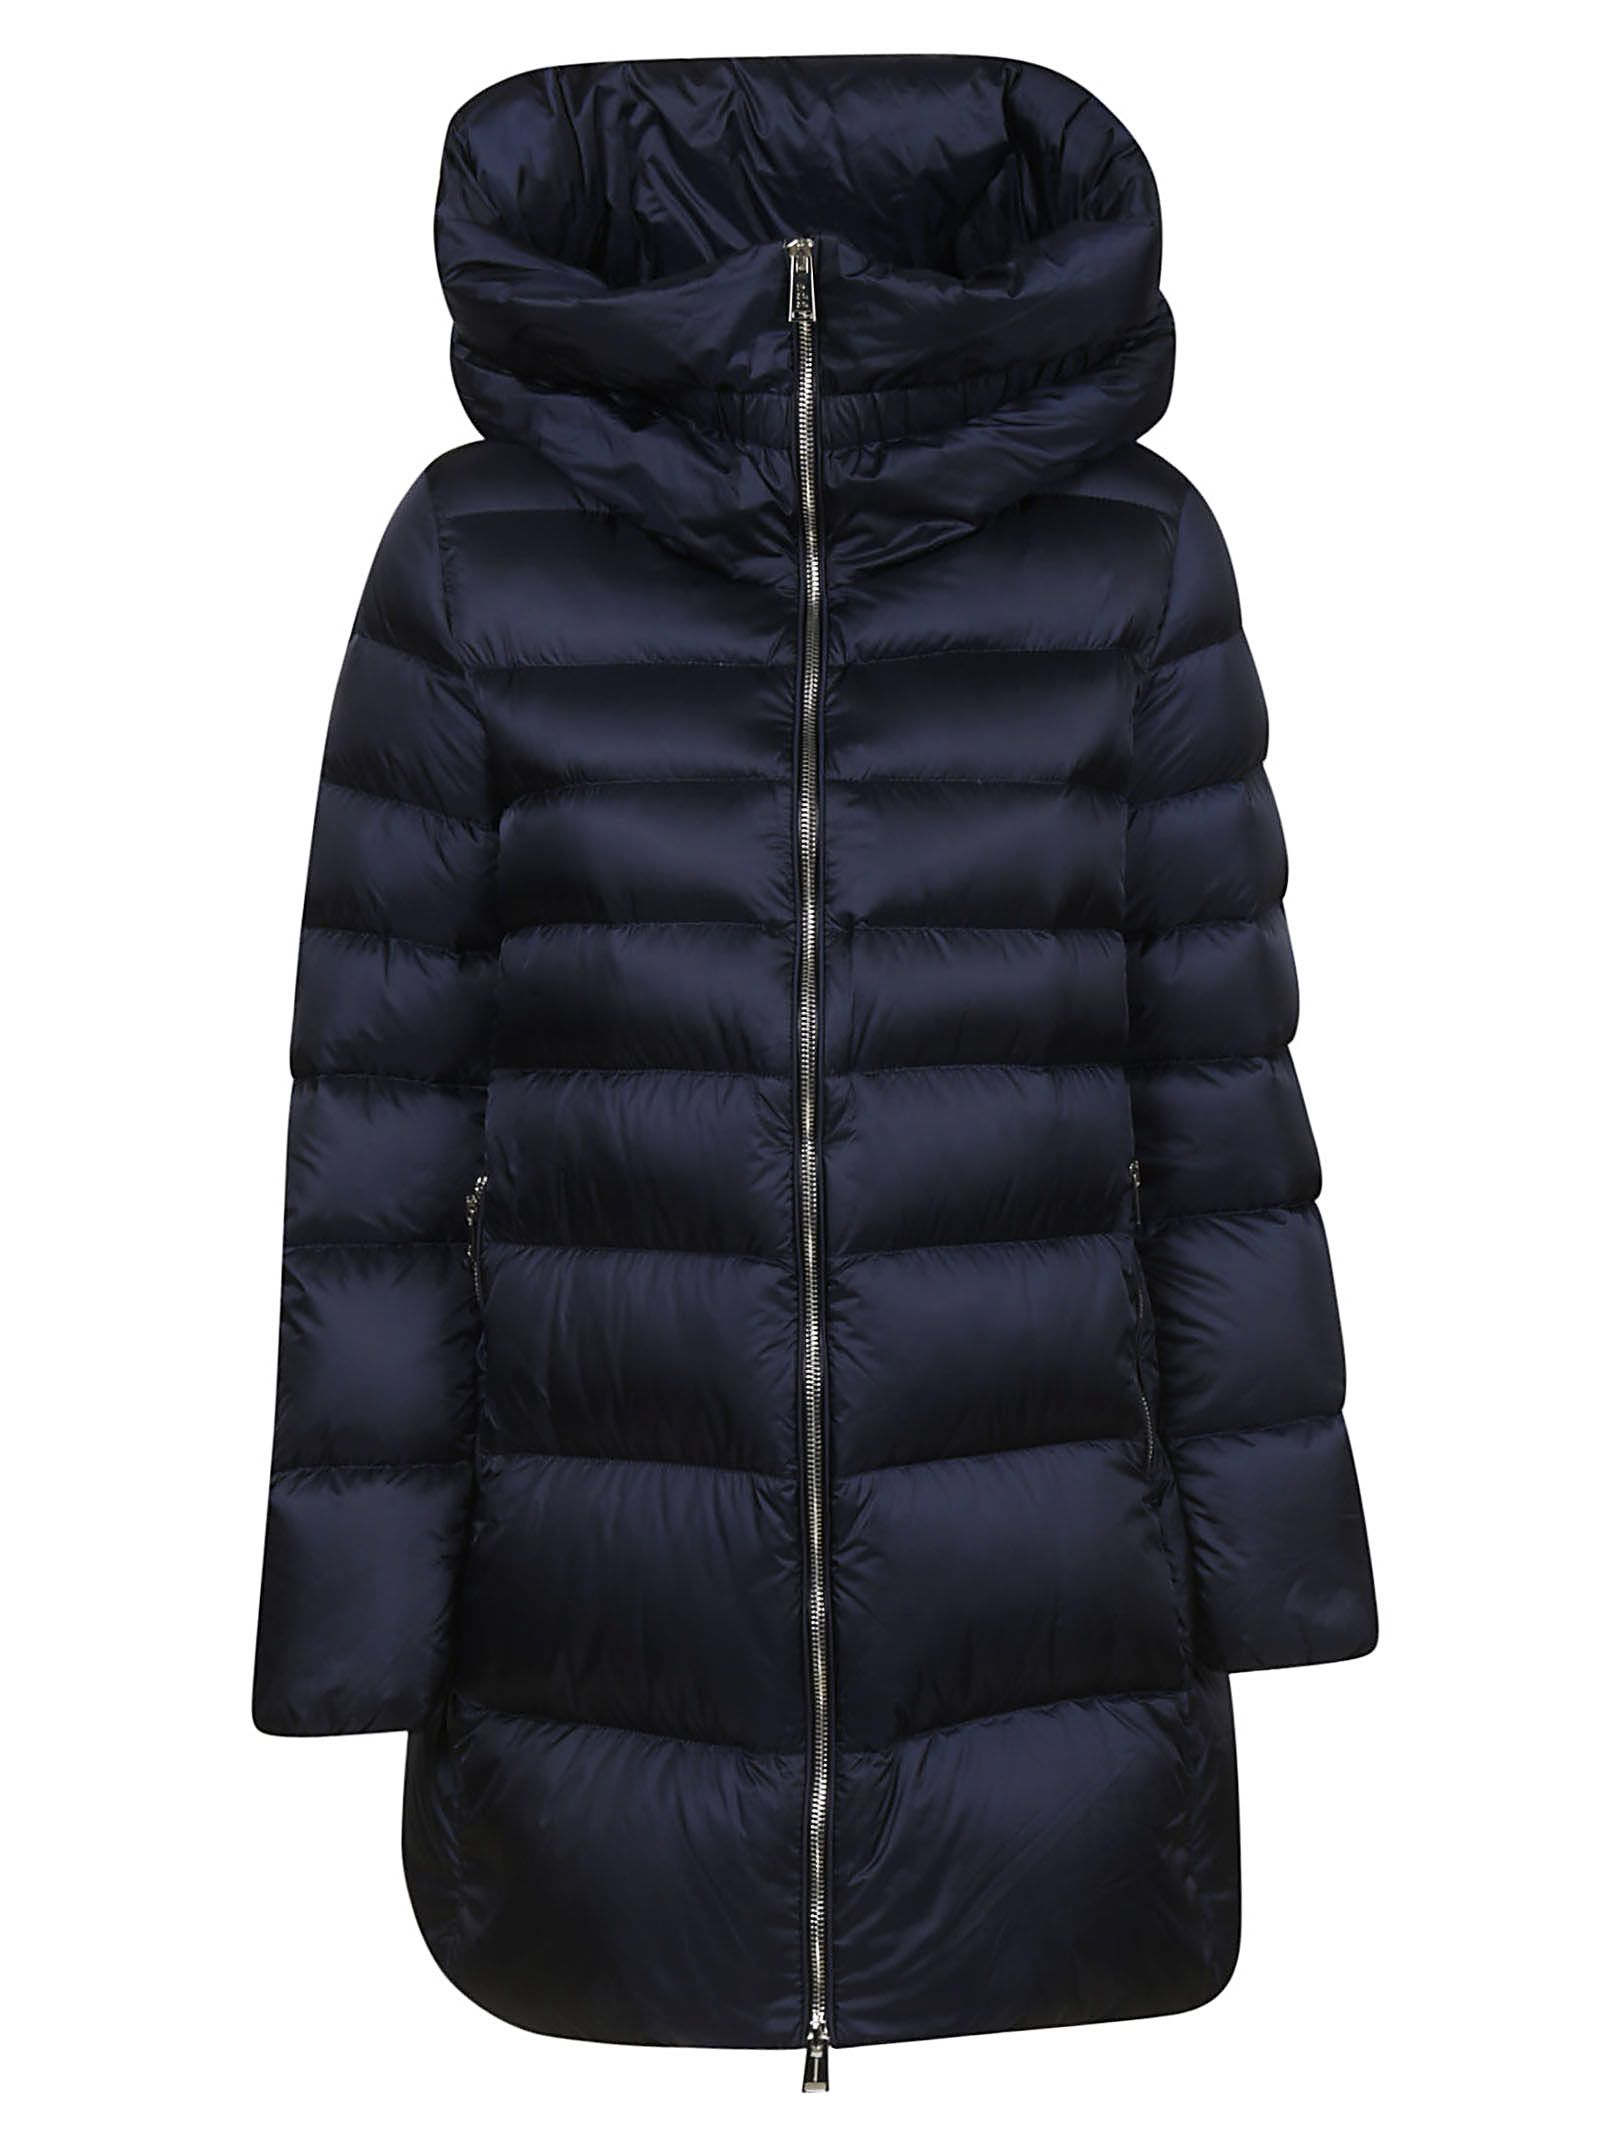 ADD Zipped-Up Padded Jacket in Blu